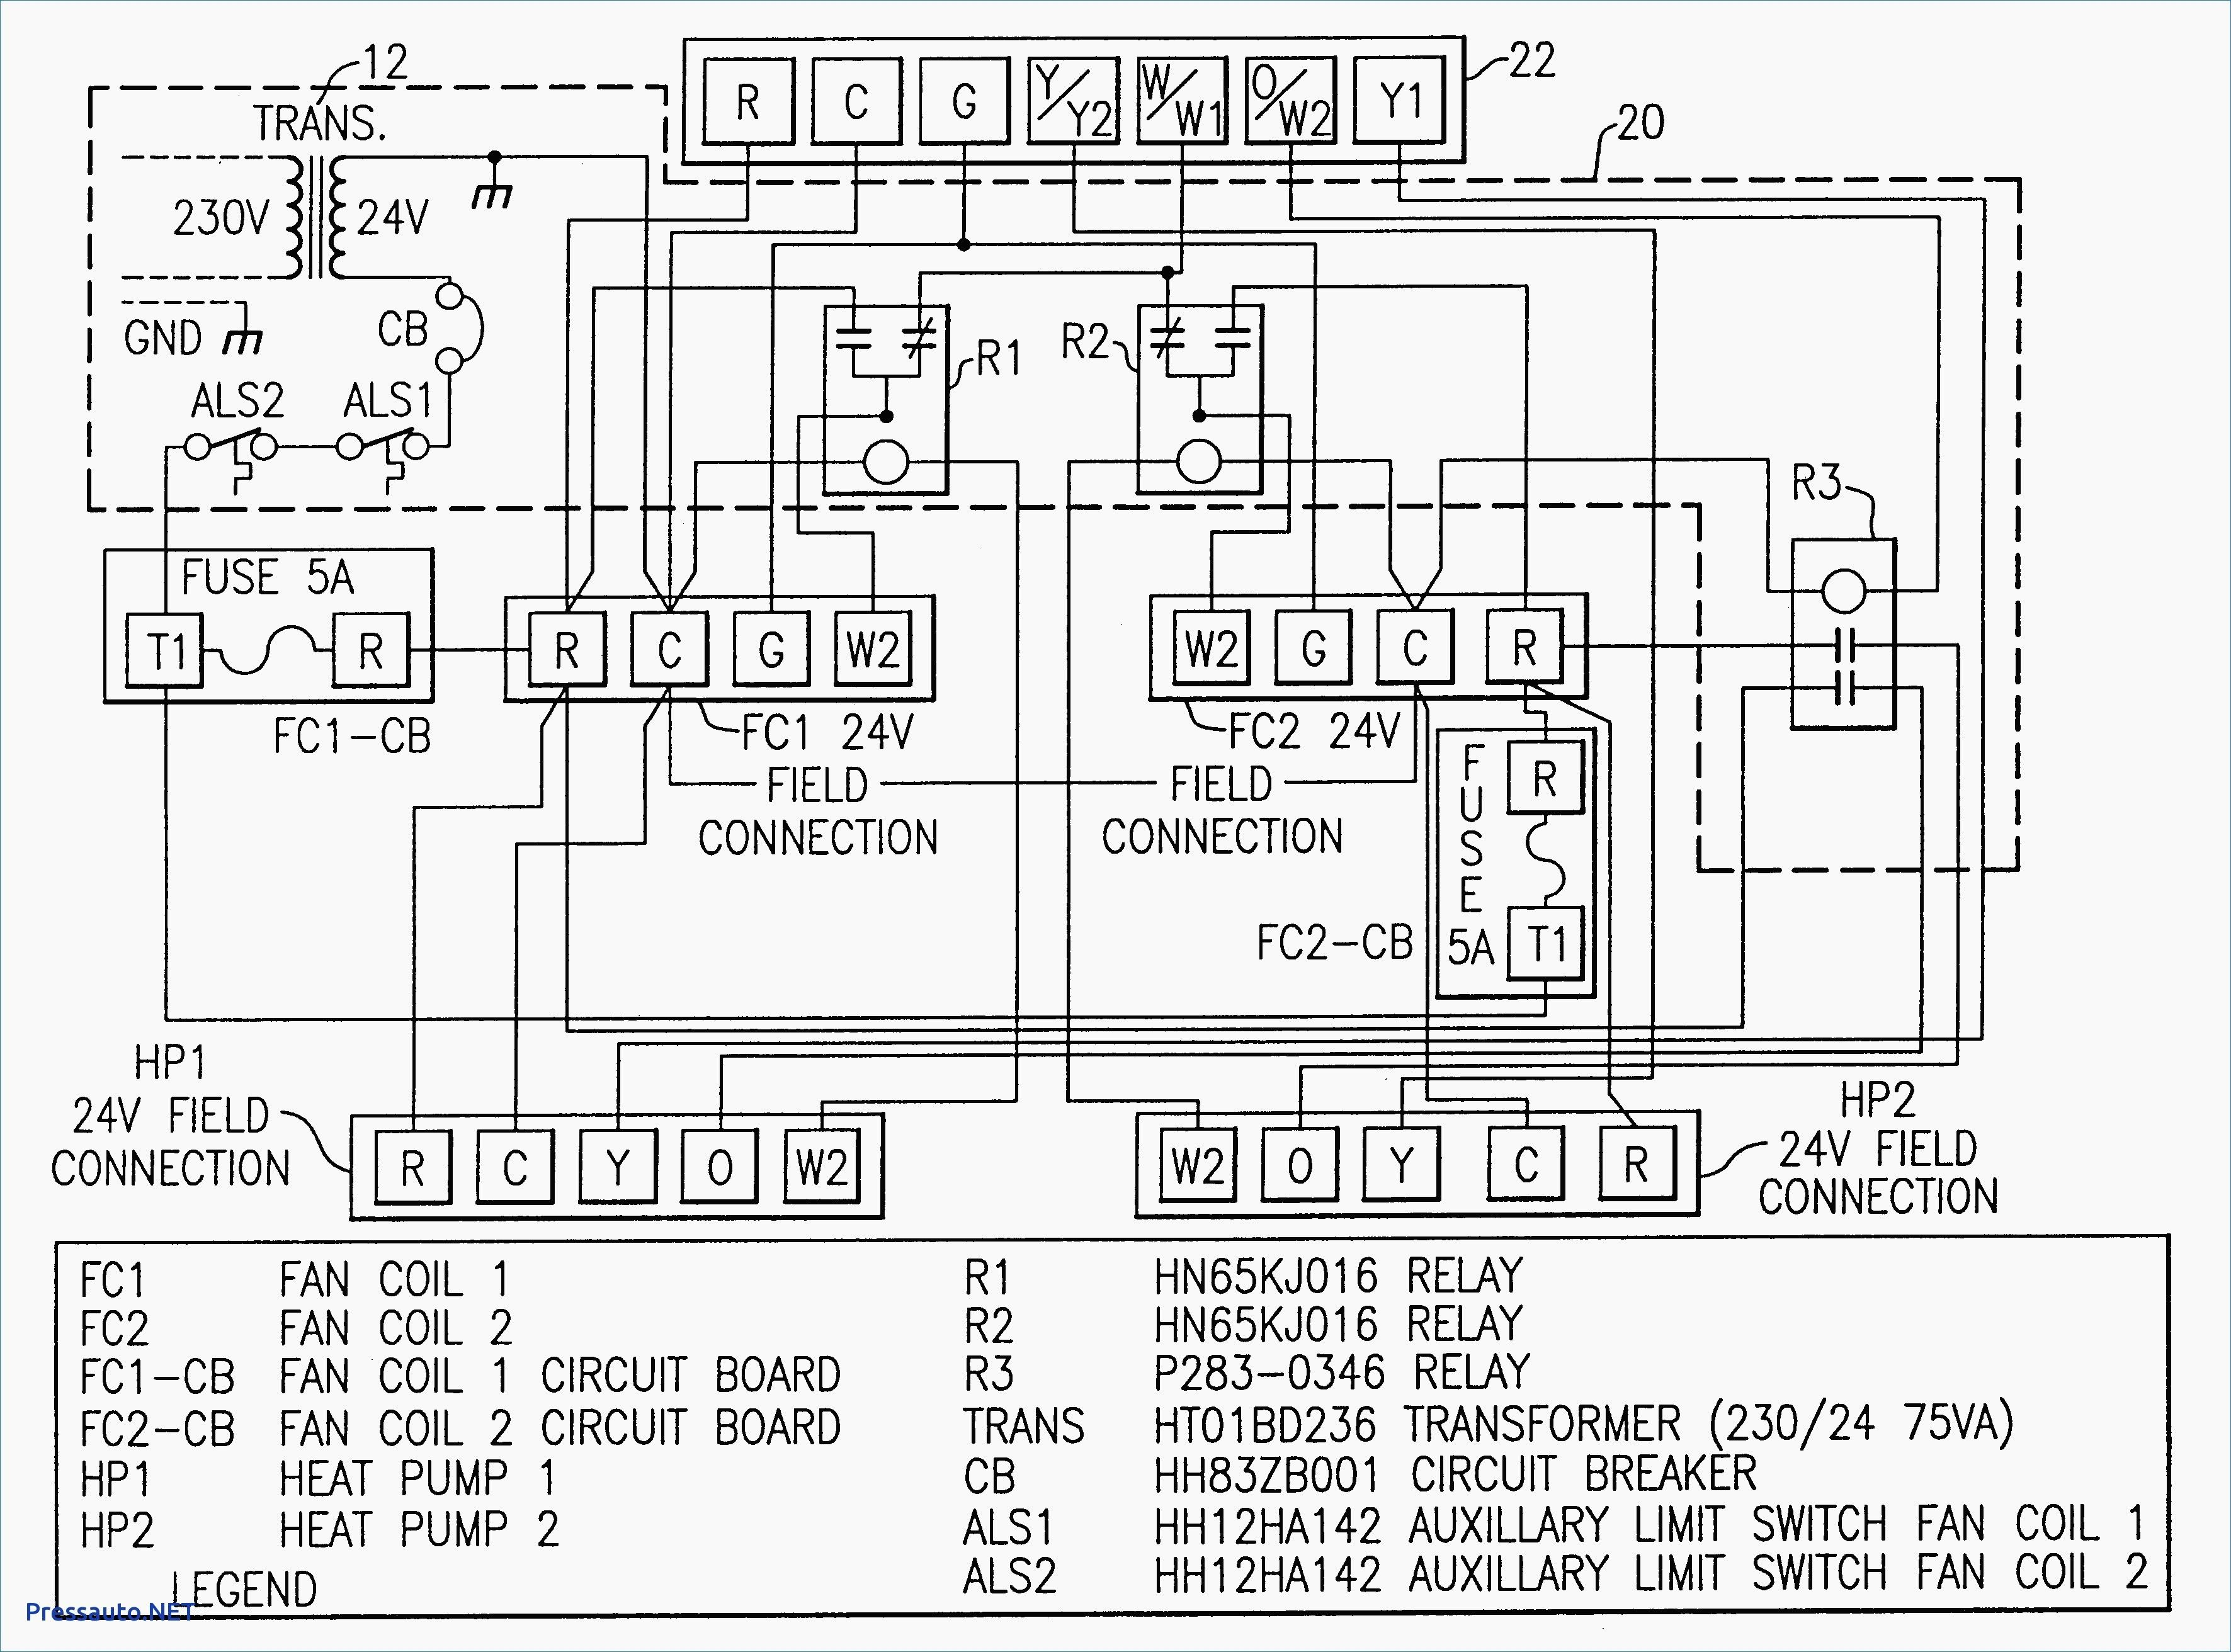 New Industrial Exhaust Fan Wiring Diagram Diagram Diagramsample Diagramtemplate Check More At Https Morningcul Thermostat Wiring Diagram Carrier Heat Pump